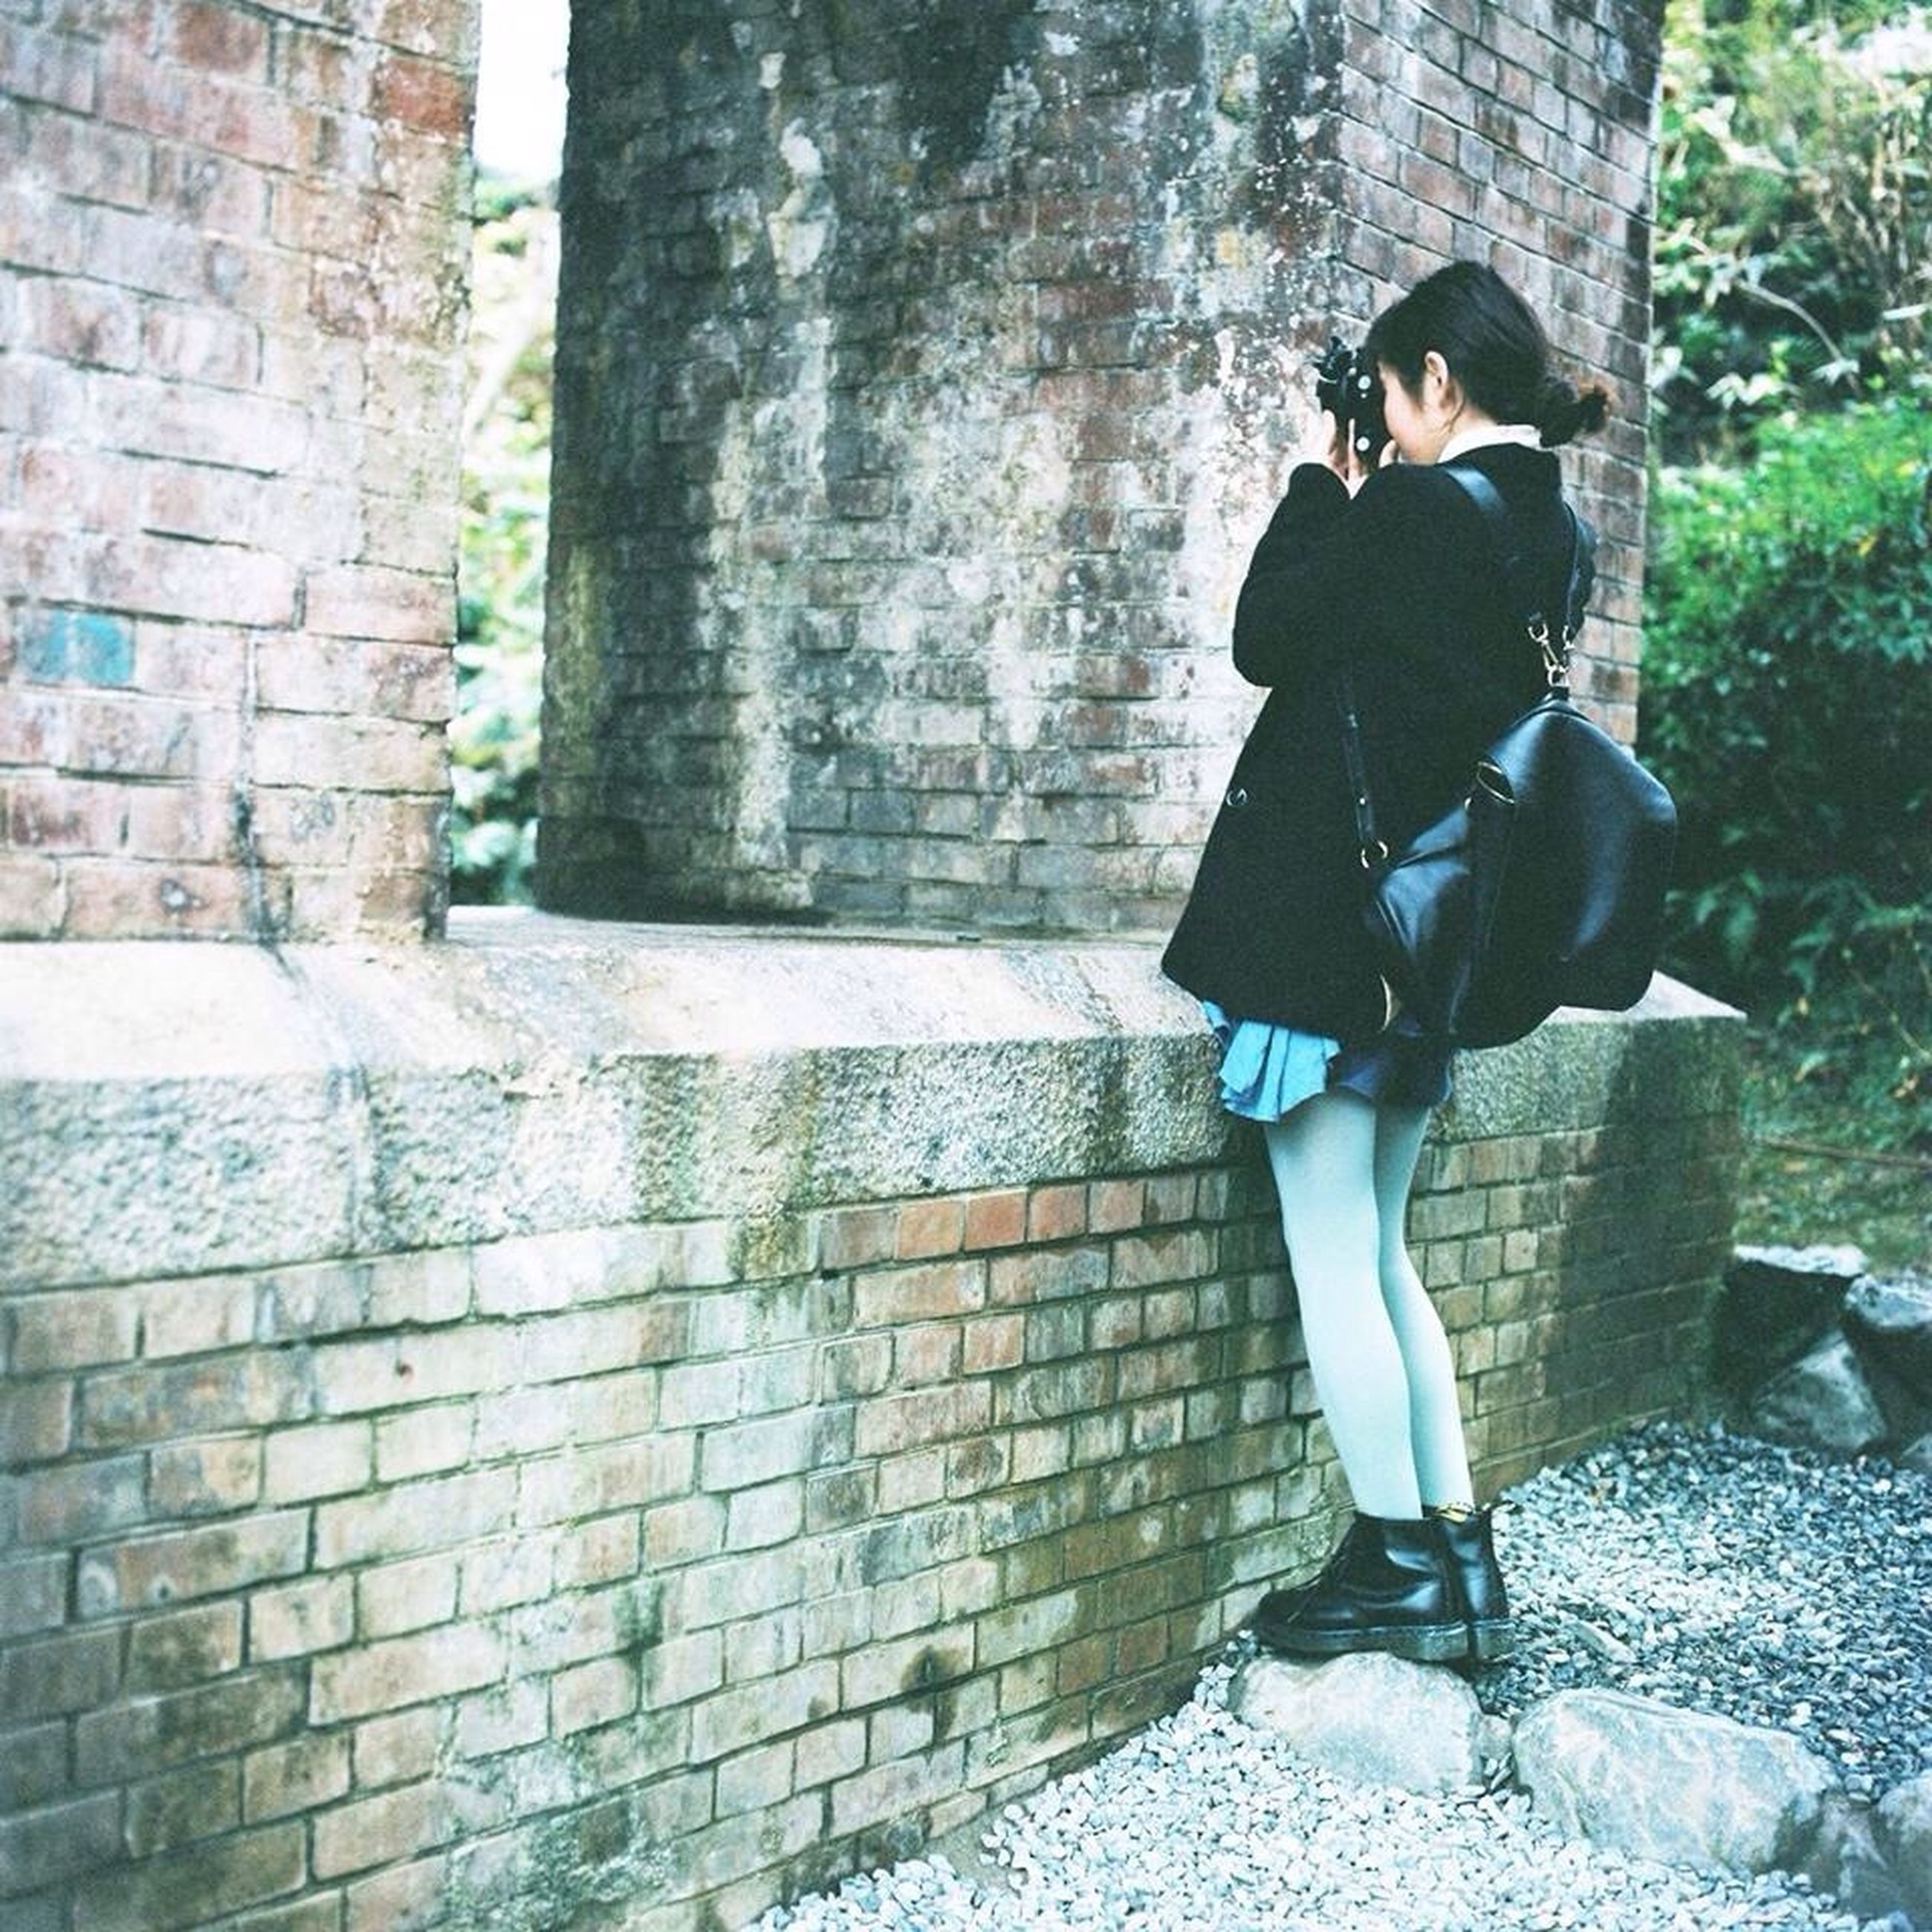 young adult, lifestyles, standing, casual clothing, full length, leisure activity, young women, wall - building feature, front view, person, architecture, built structure, brick wall, three quarter length, stone wall, building exterior, wall